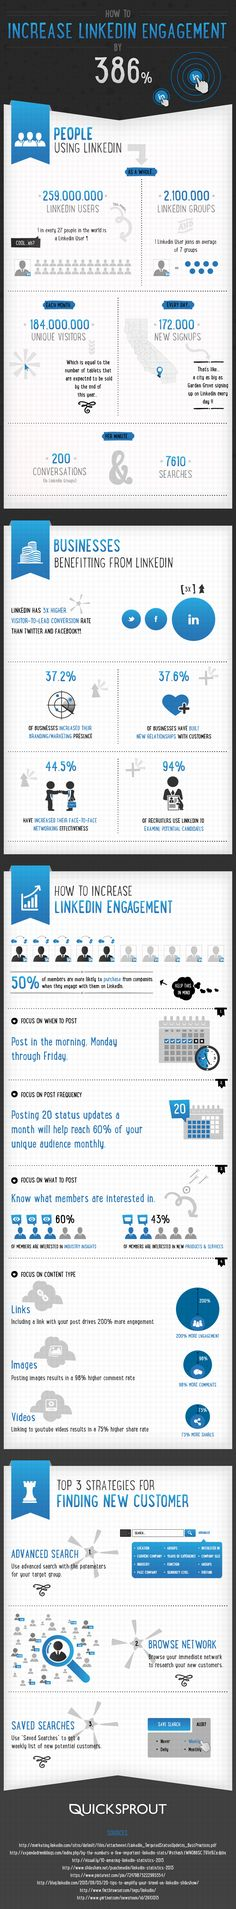 Increase LInkedIn engagement. By Quicksprout